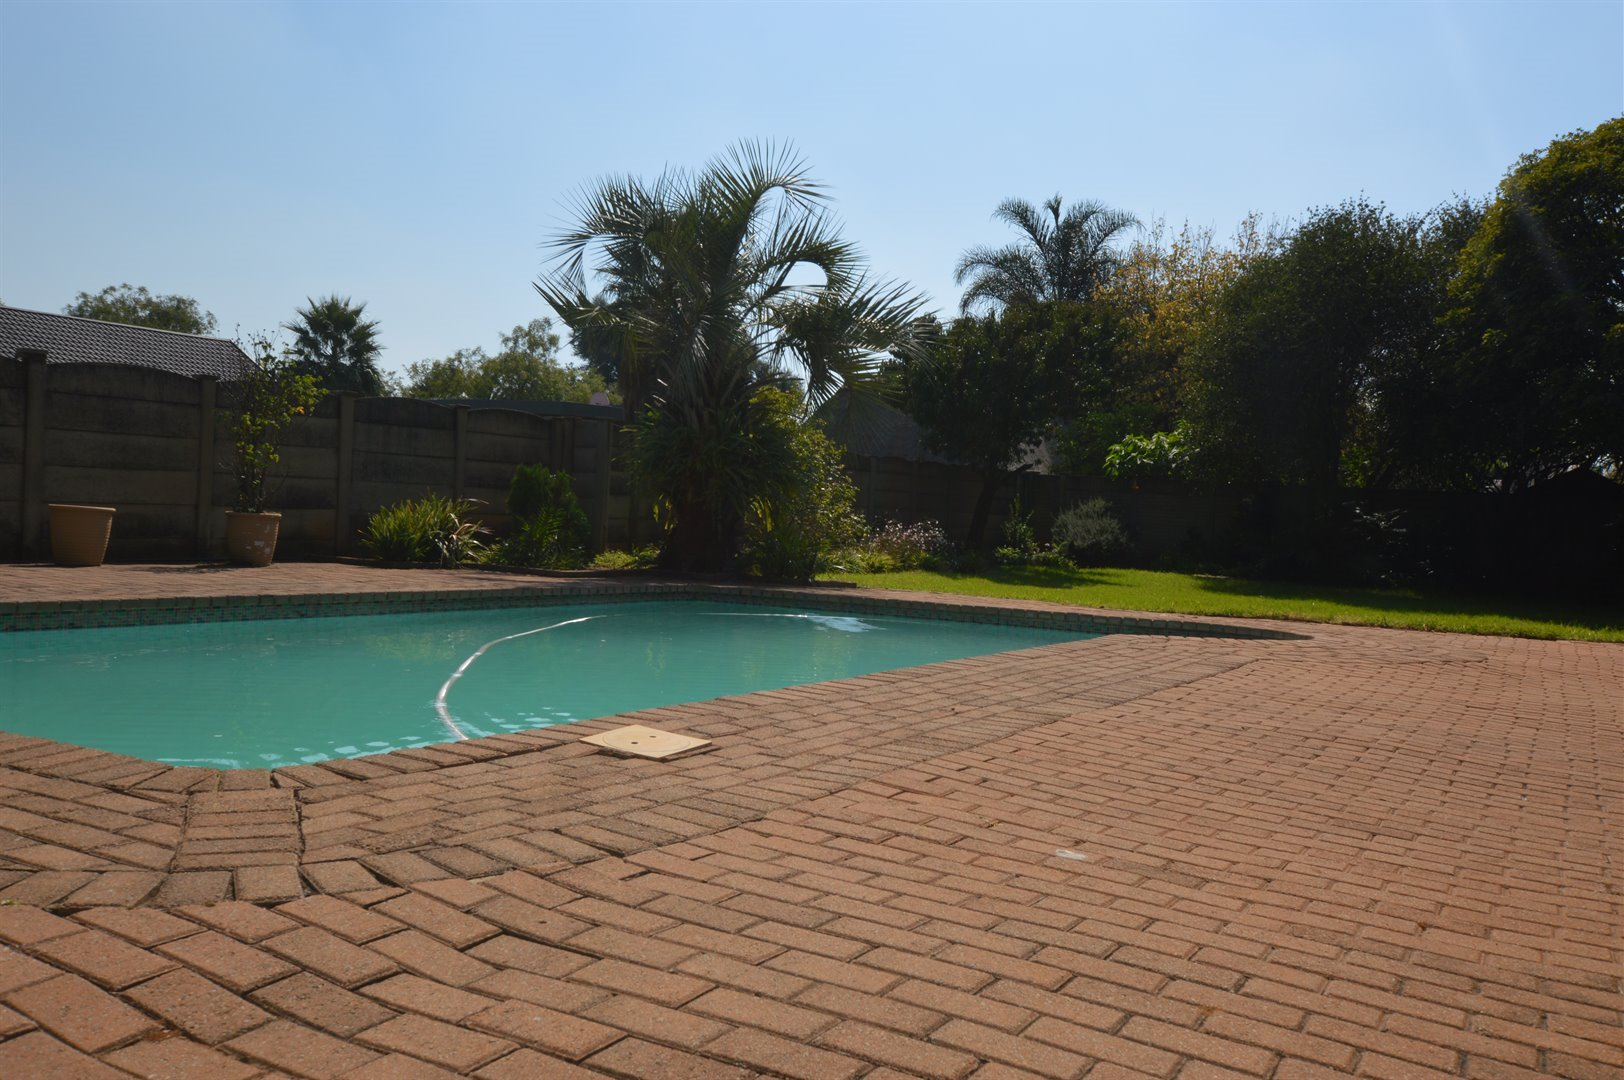 Vanderbijlpark Se 2 property for sale. Ref No: 13623209. Picture no 28